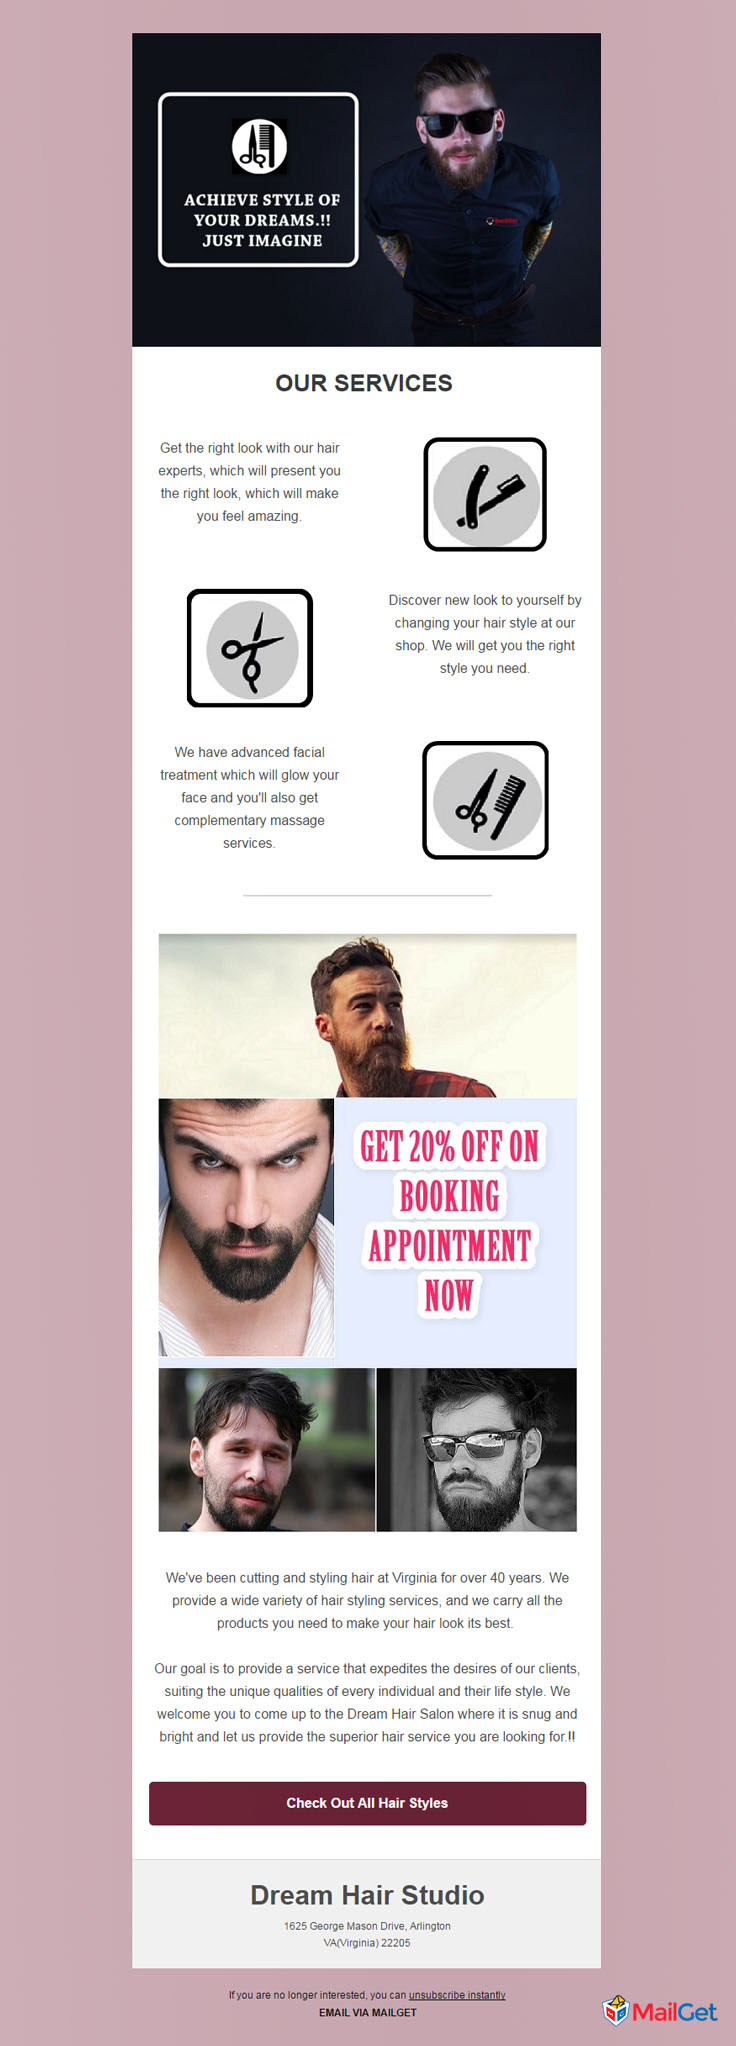 free-hair-salon-email-newsletter-templates-3-MailGet